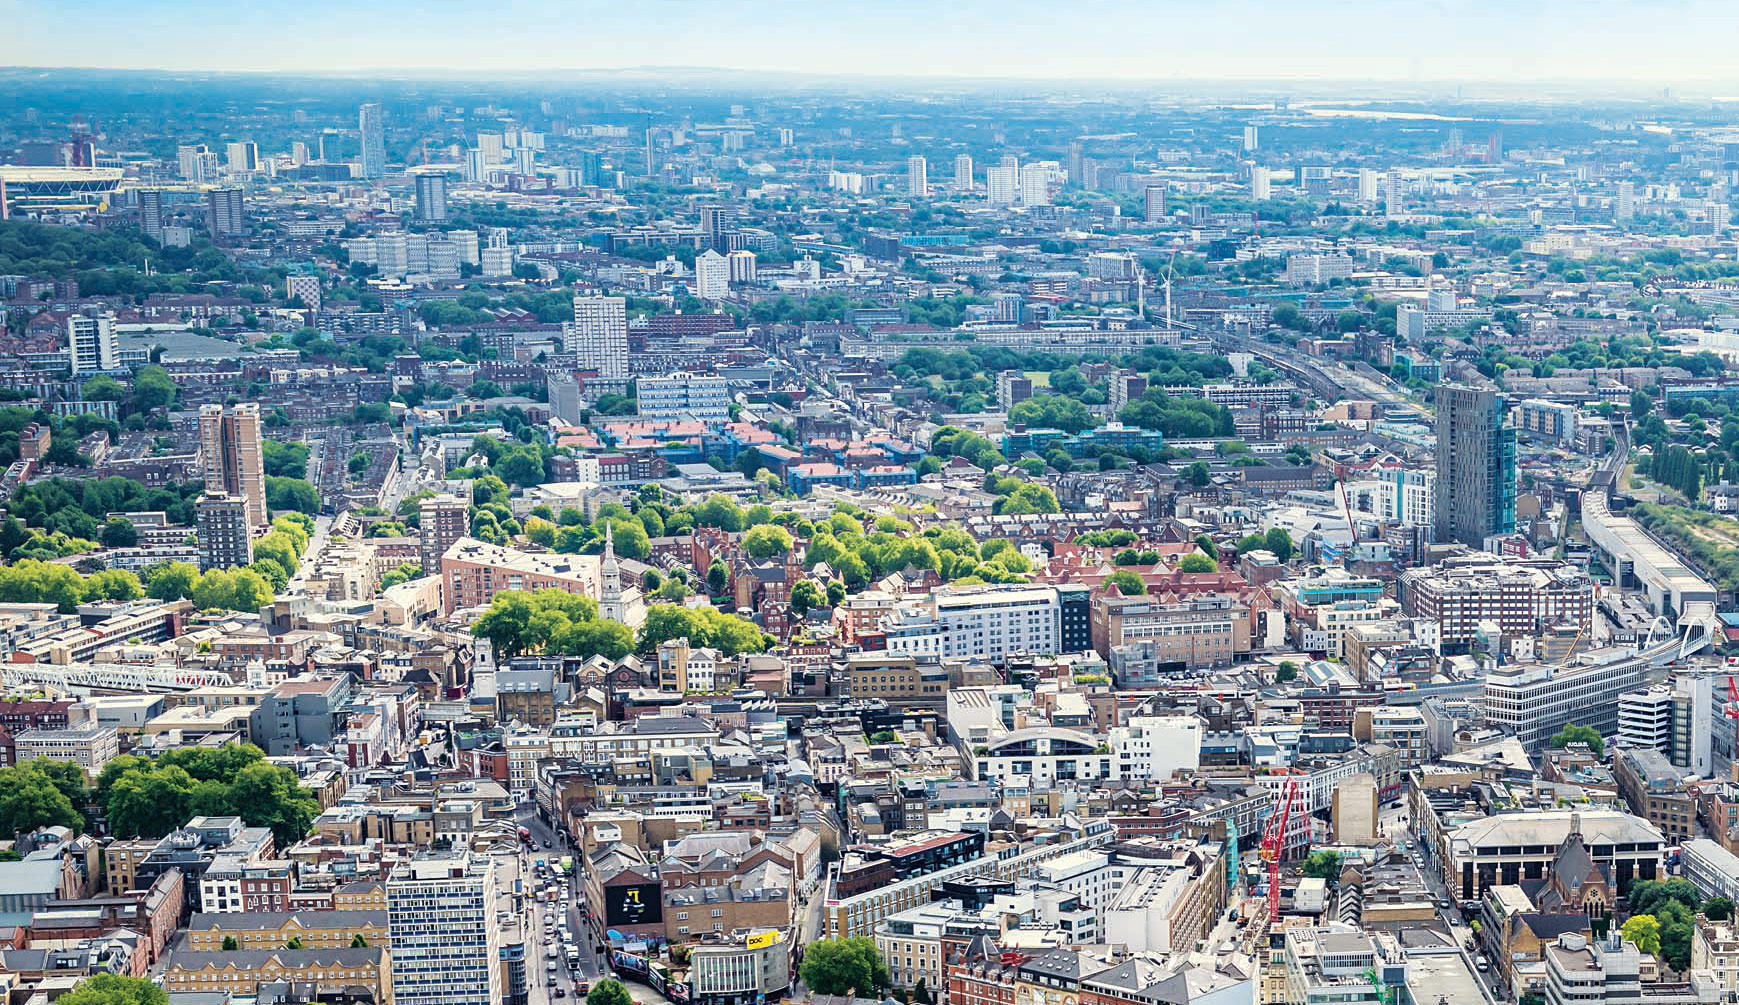 Greater London Property Market Starting To Feel The Pain